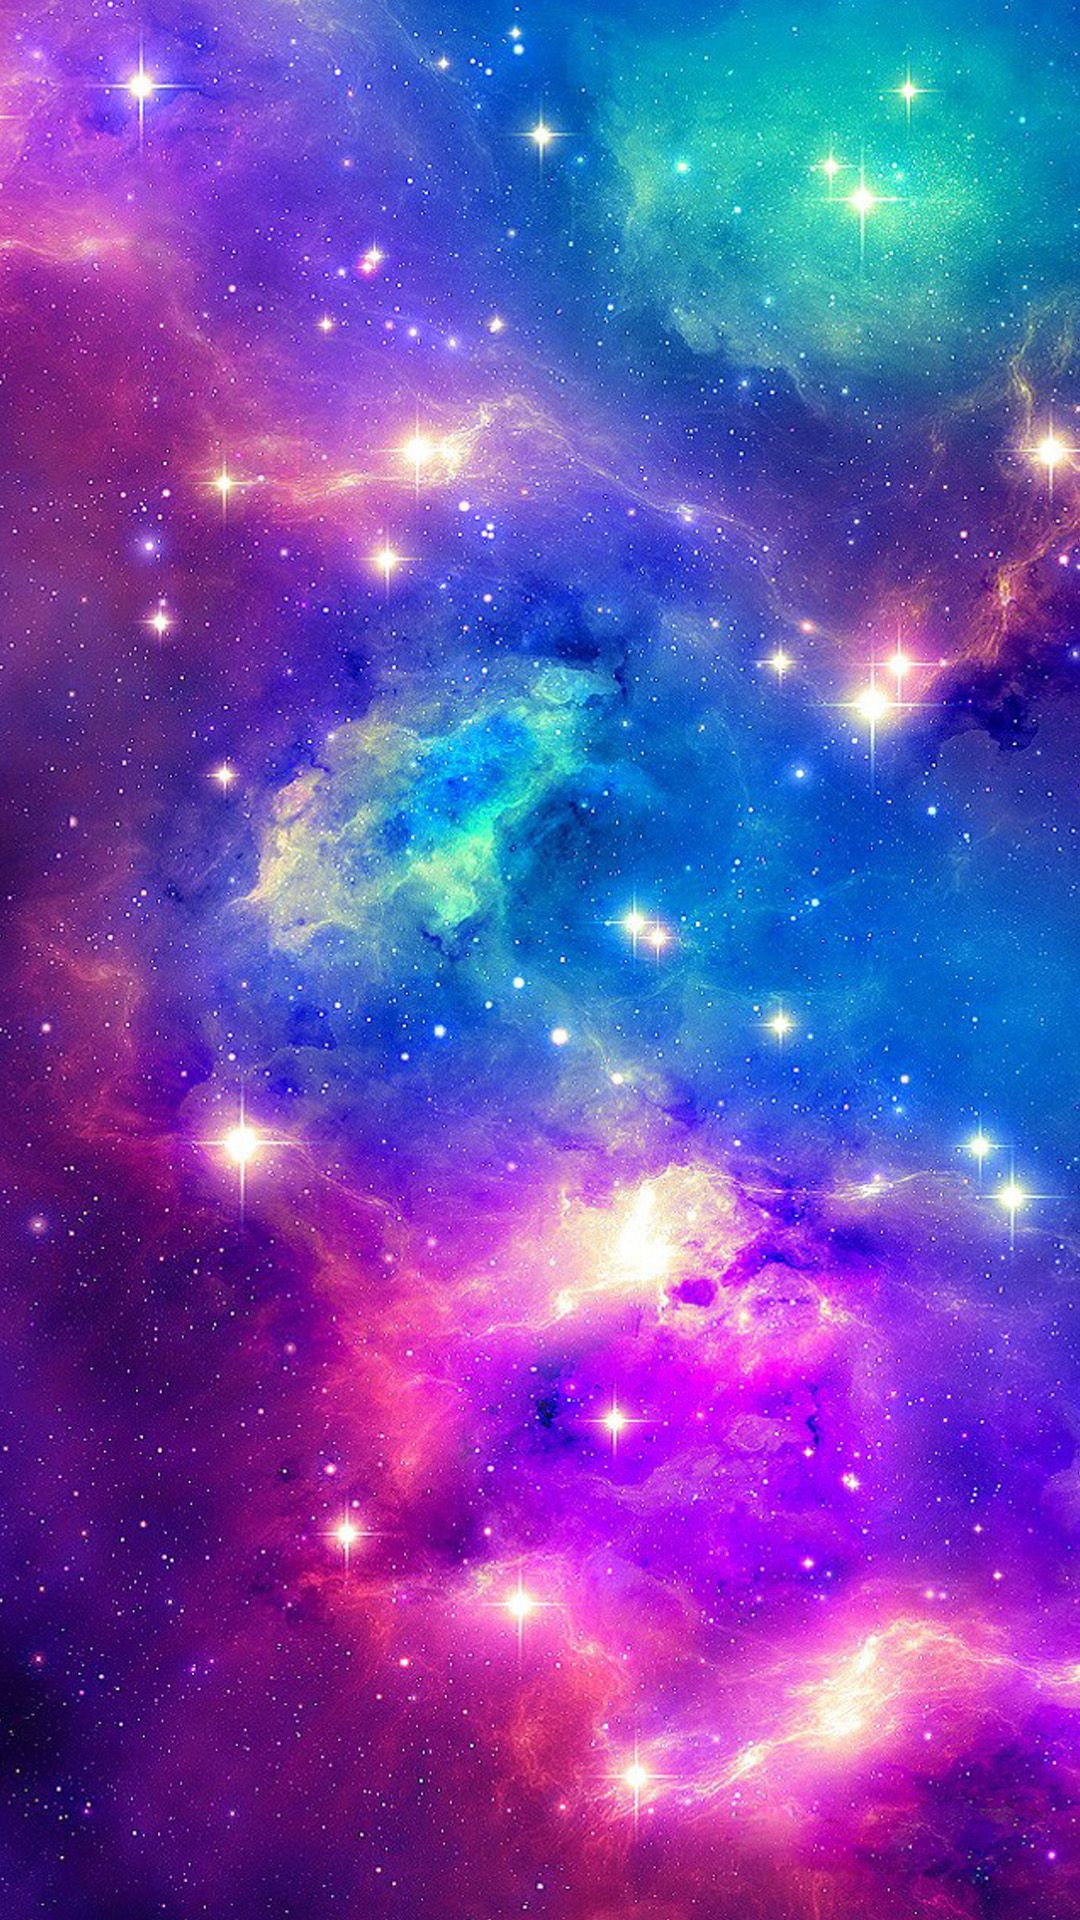 Sparkling Shiny Fantasy Outer Space Iphone 6 Wallpaper Download Iphone Wallpapers Ipad Wallpapers O Pastel Galaxy Galaxy Tumblr Backgrounds Galaxy Wallpaper